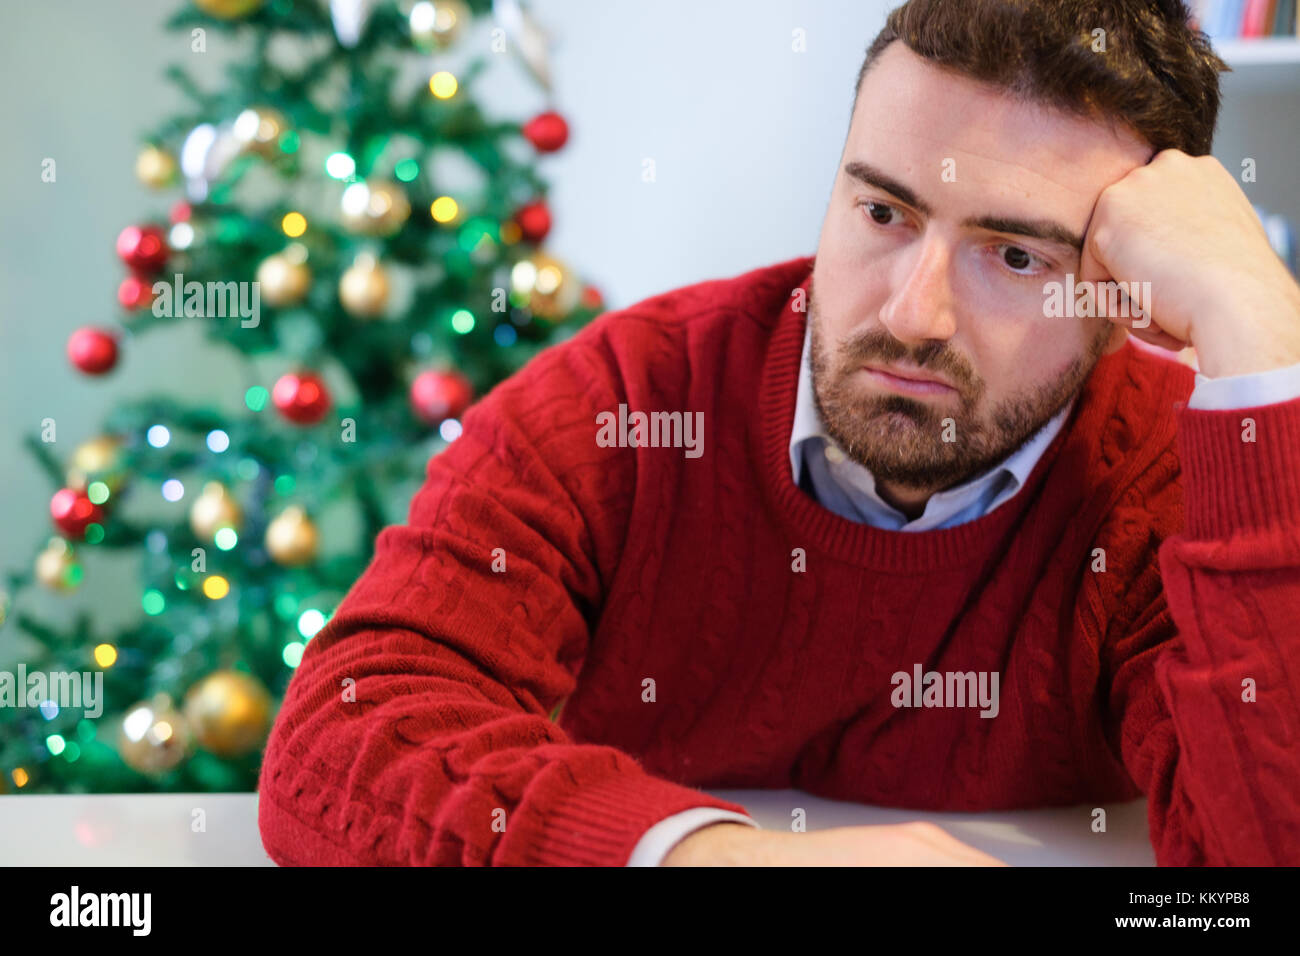 lonely during christmas